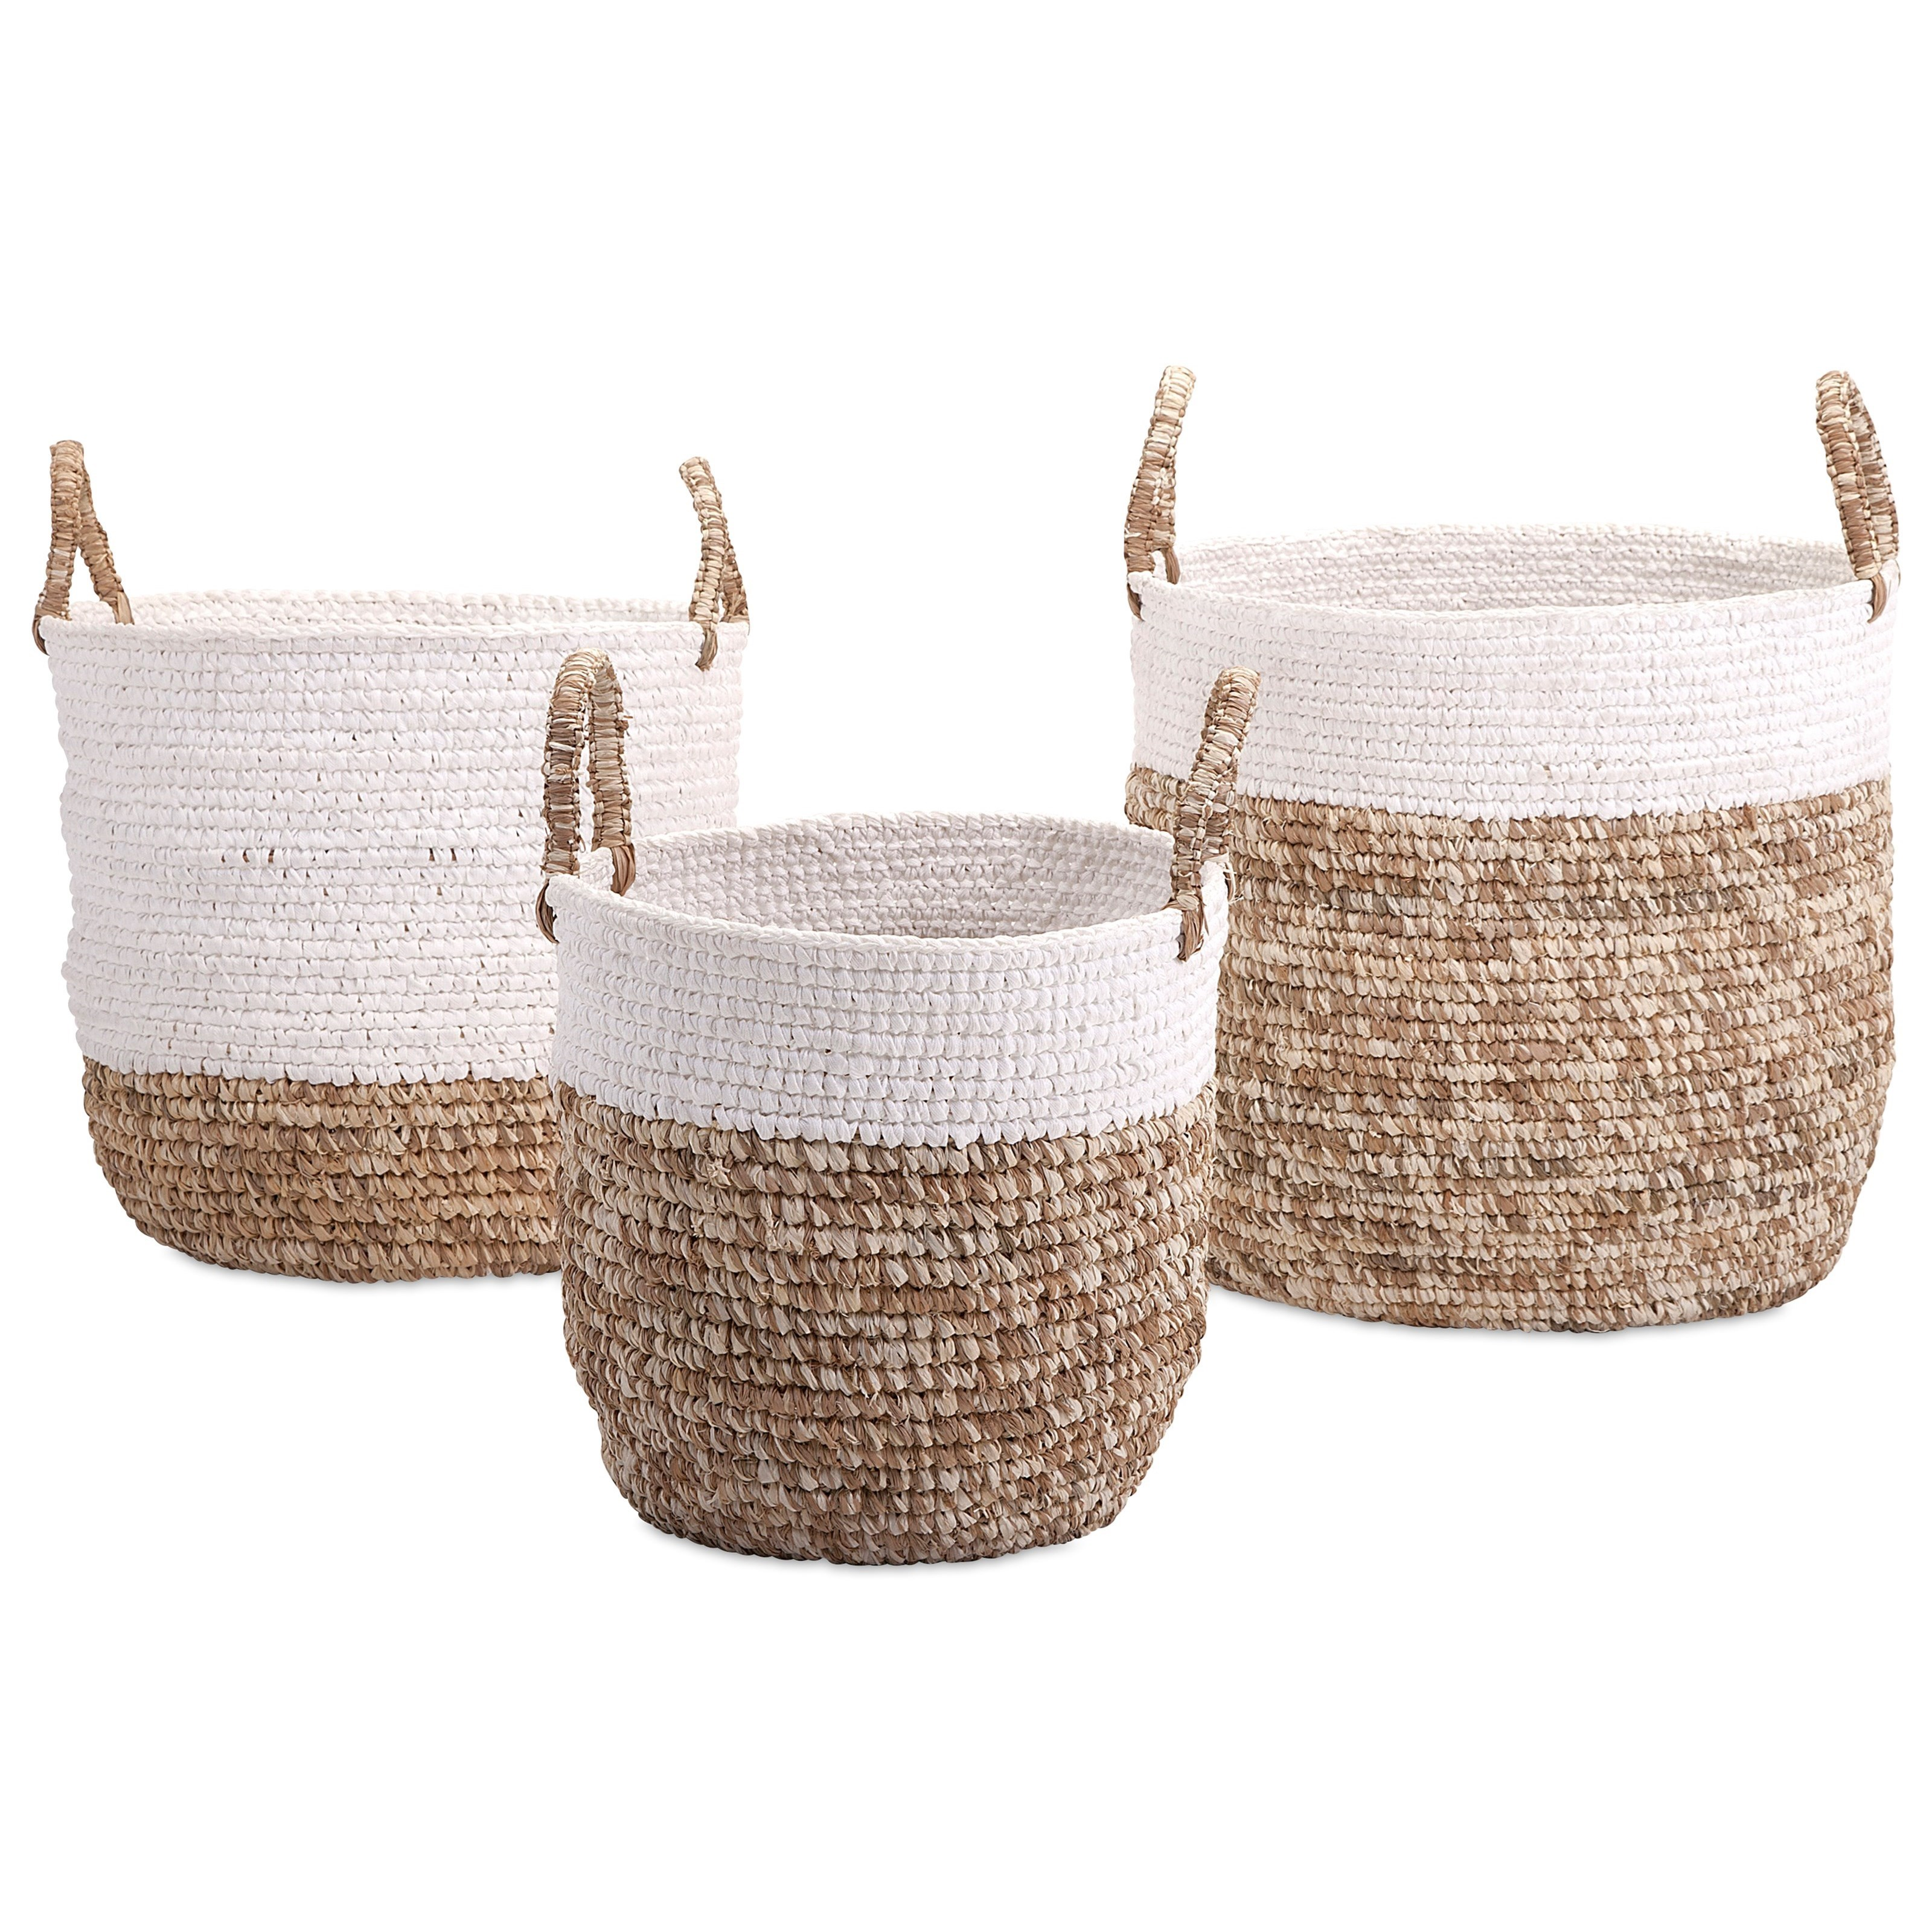 Baskets Shoelace and Raffia Woven Baskets - Set of 3 by IMAX Worldwide Home at Alison Craig Home Furnishings